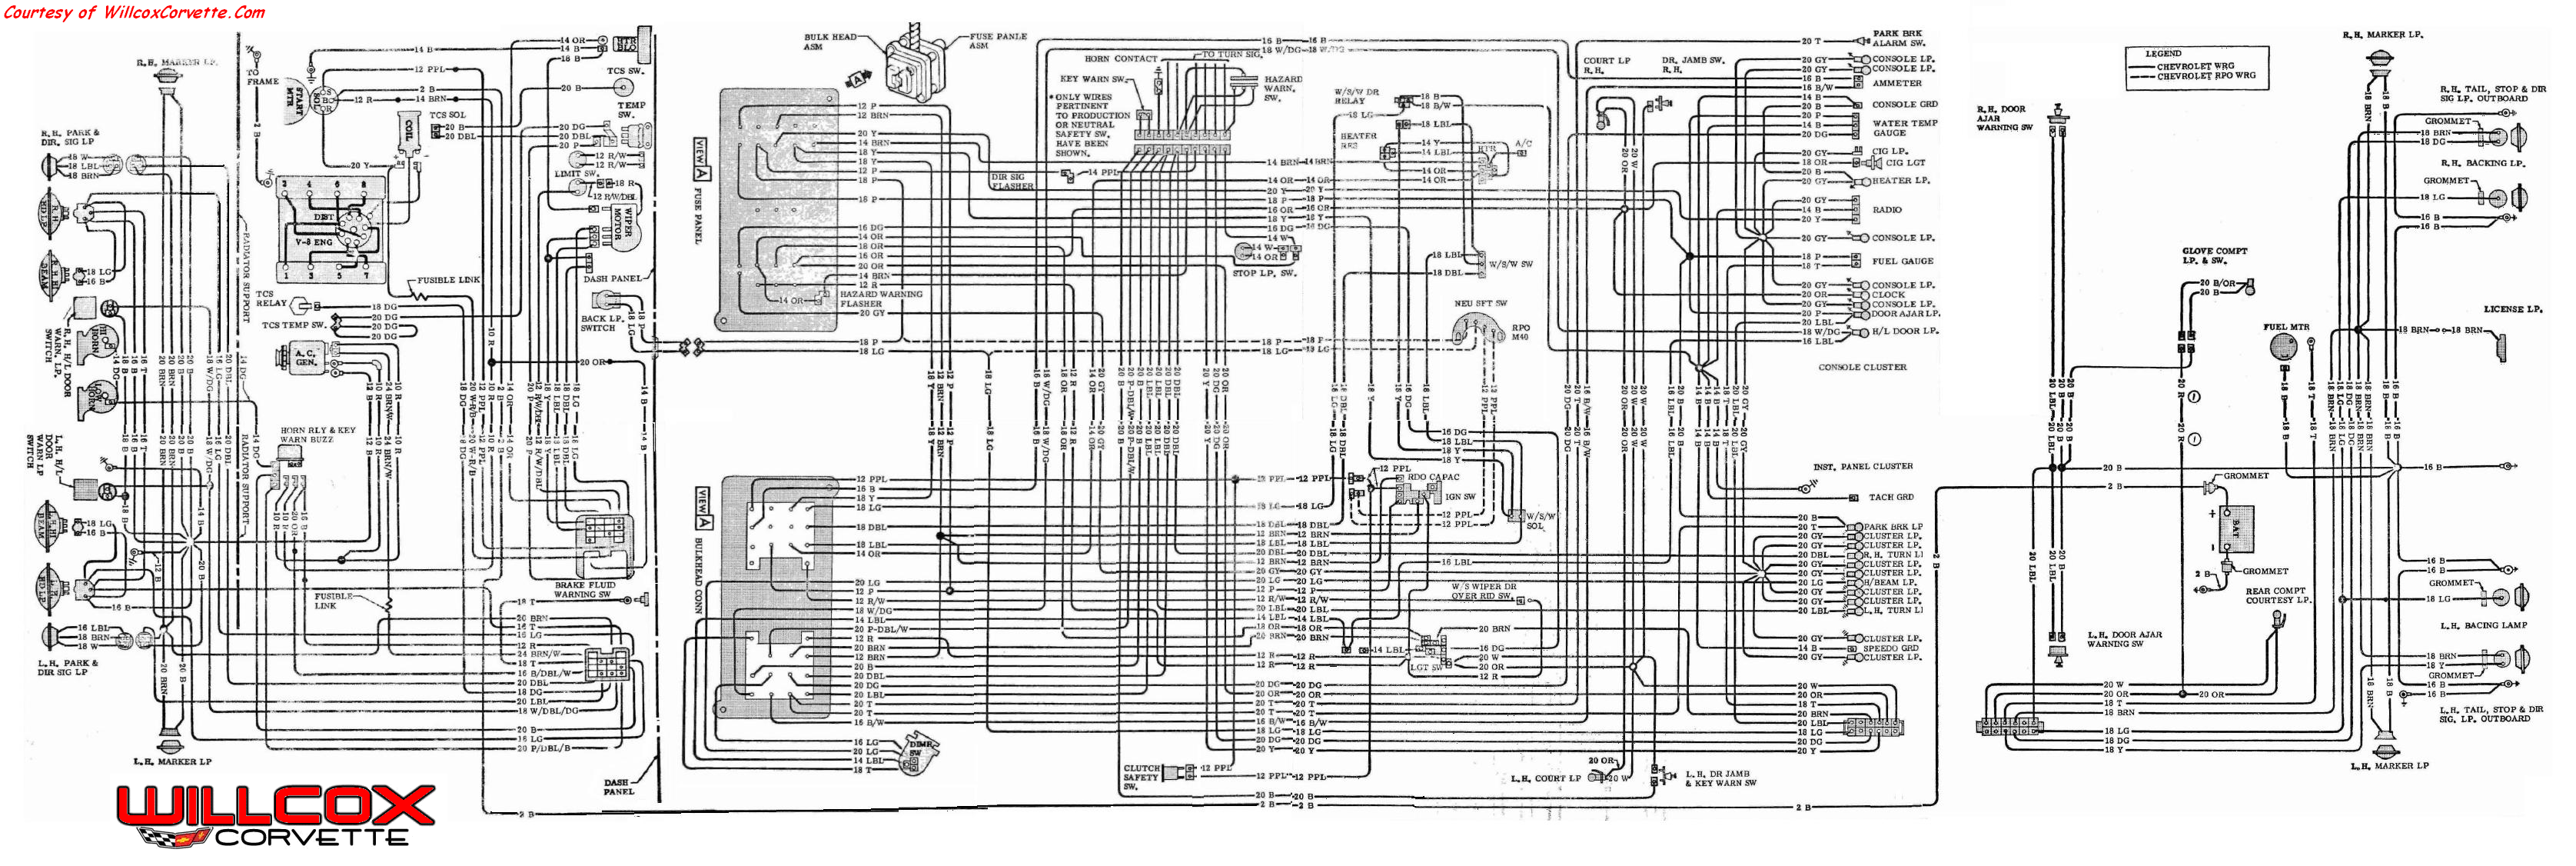 1970 Corvette Wiring Diagram - Wiring Diagrams Folder on